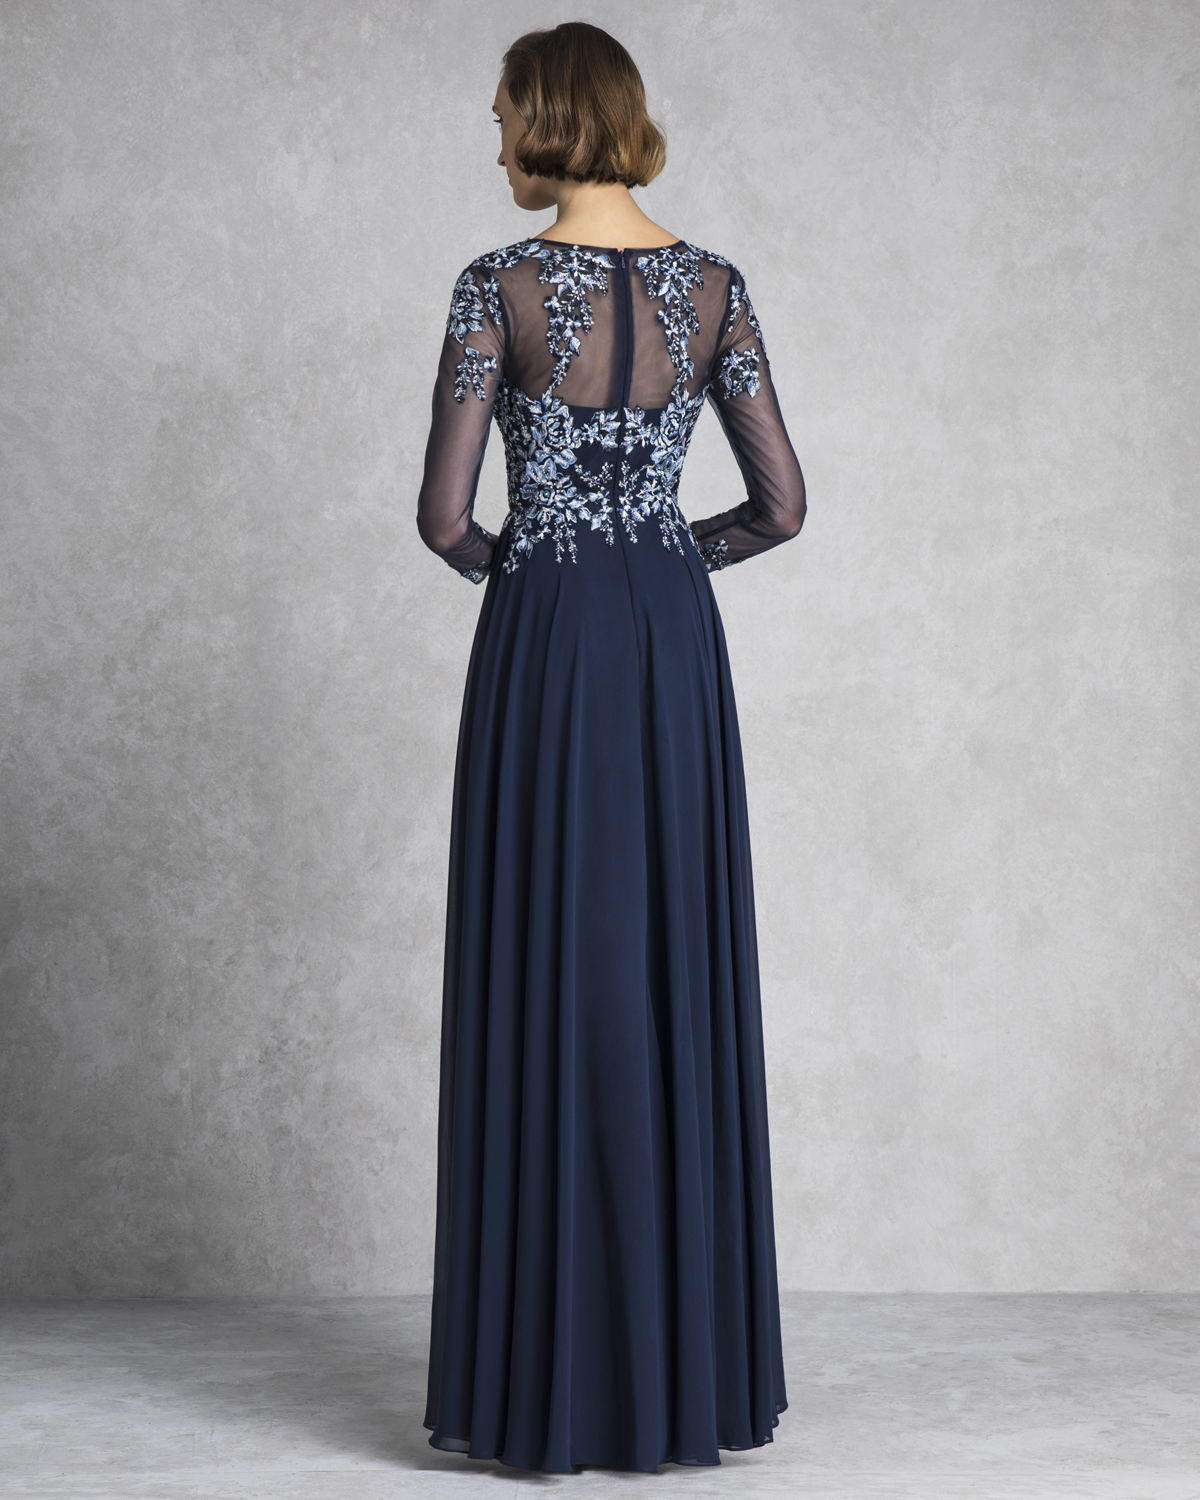 Classic Dresses / Long evening dress with long tulle sleeves and beading